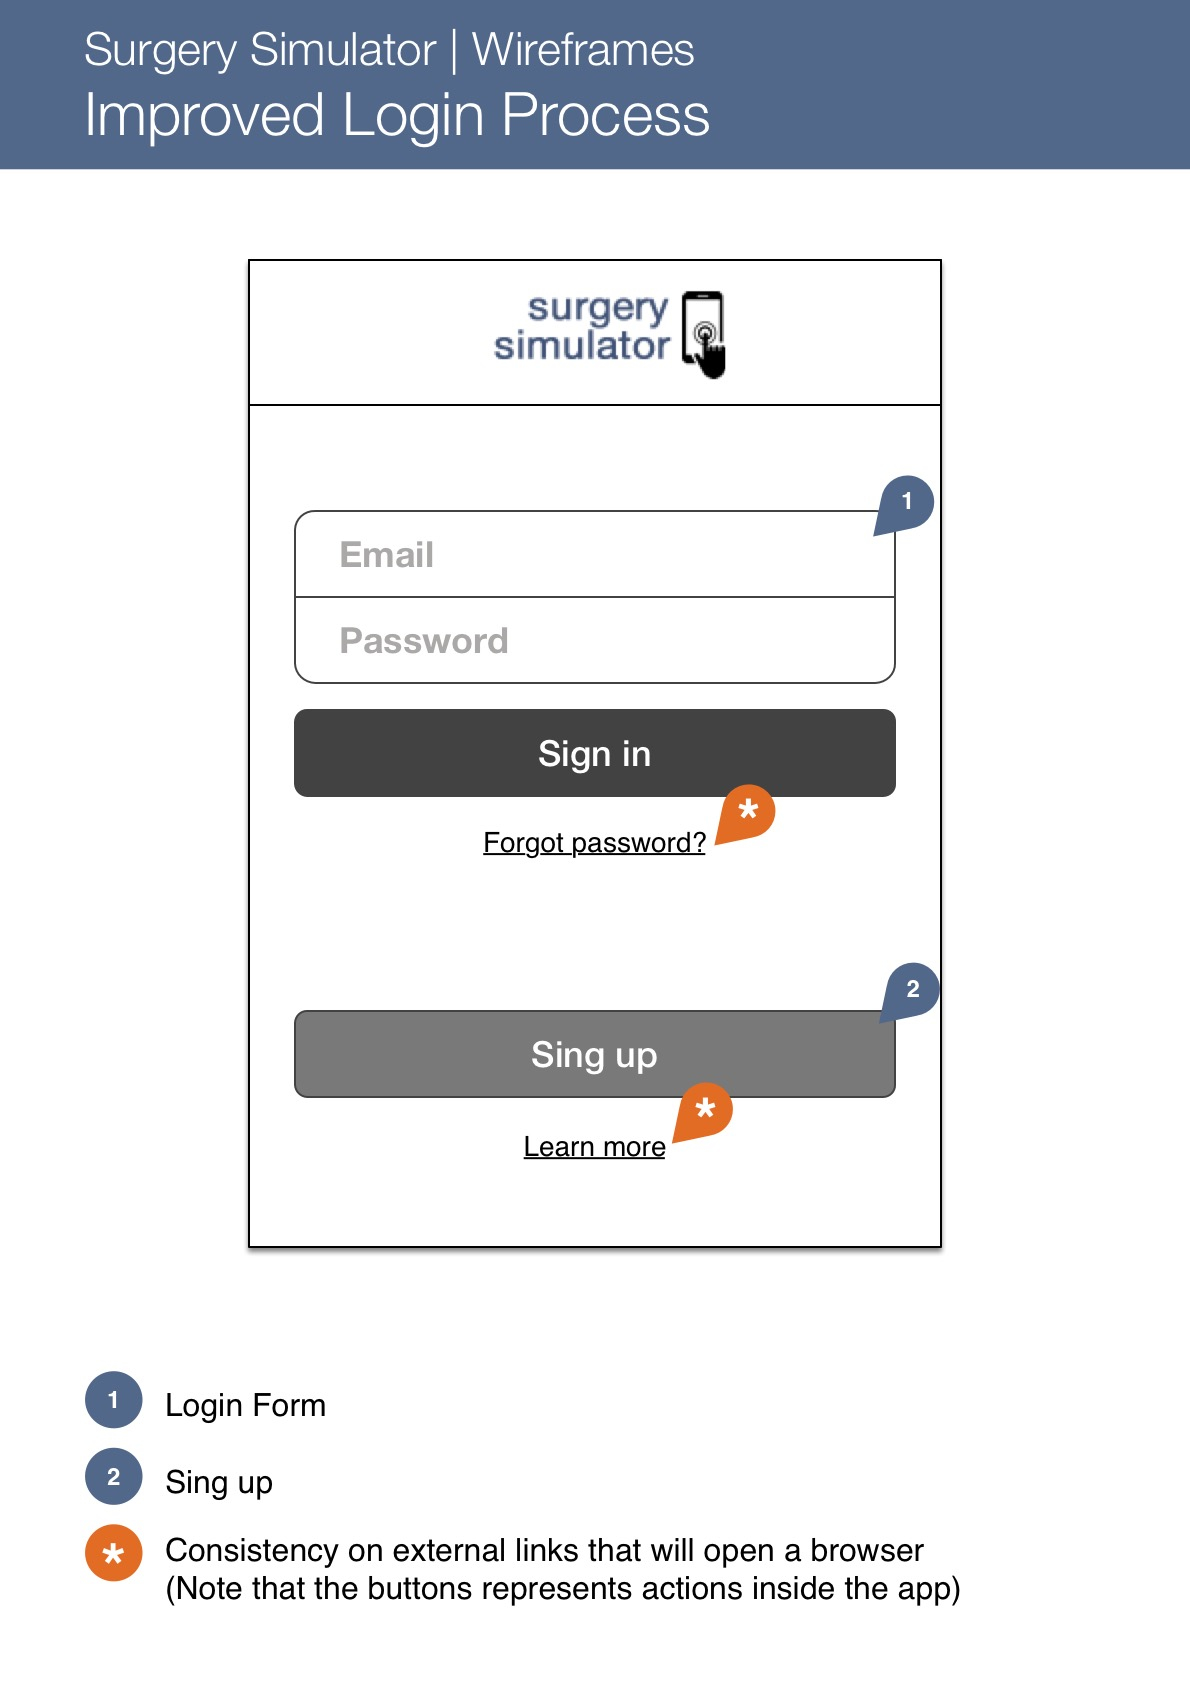 Surgery Simulator app - Wireframes 2